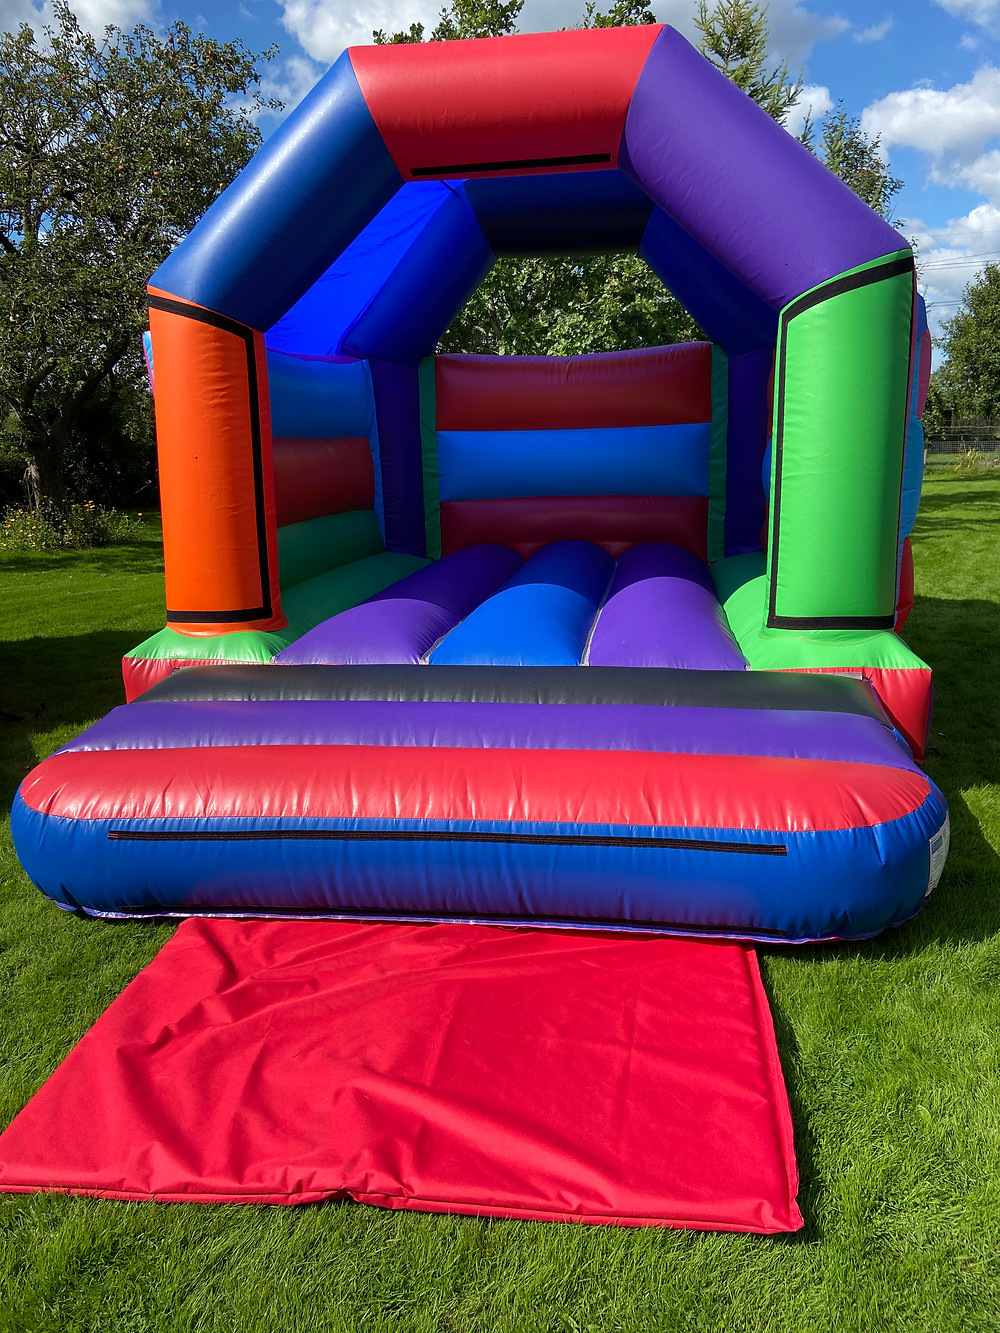 15ft x 11ft Bouncy Castle from bouncy castle express